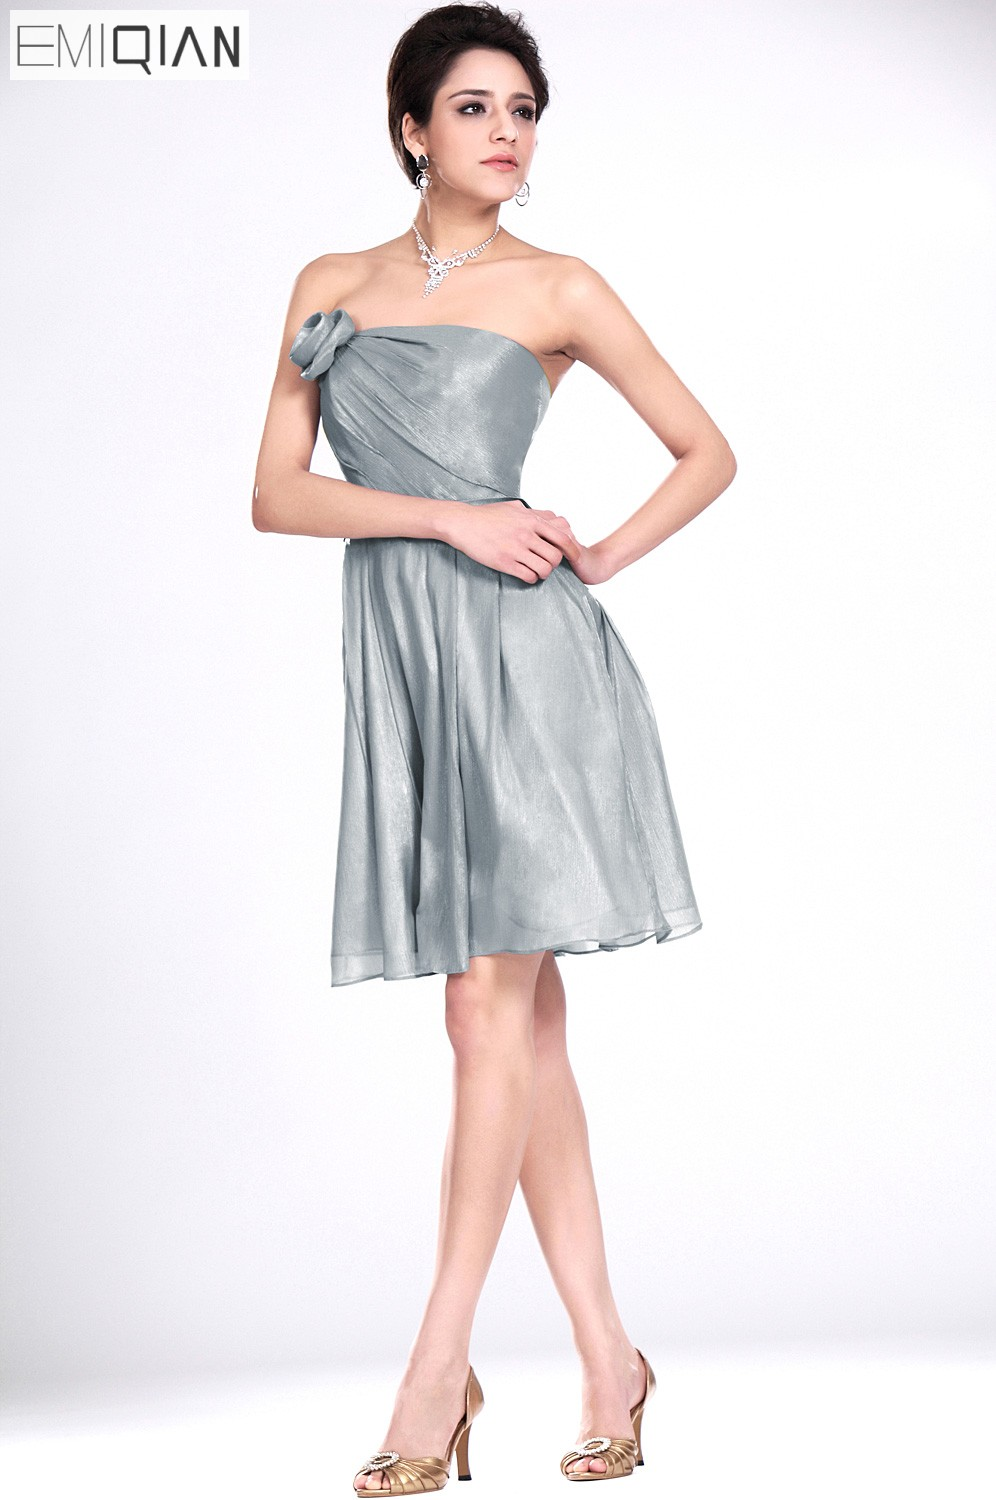 Freeshipping strapless silver gray chiffon knee length short freeshipping strapless silver gray chiffon knee length short bridesmaid dress wedding party dress in bridesmaid dresses from weddings events on ombrellifo Gallery